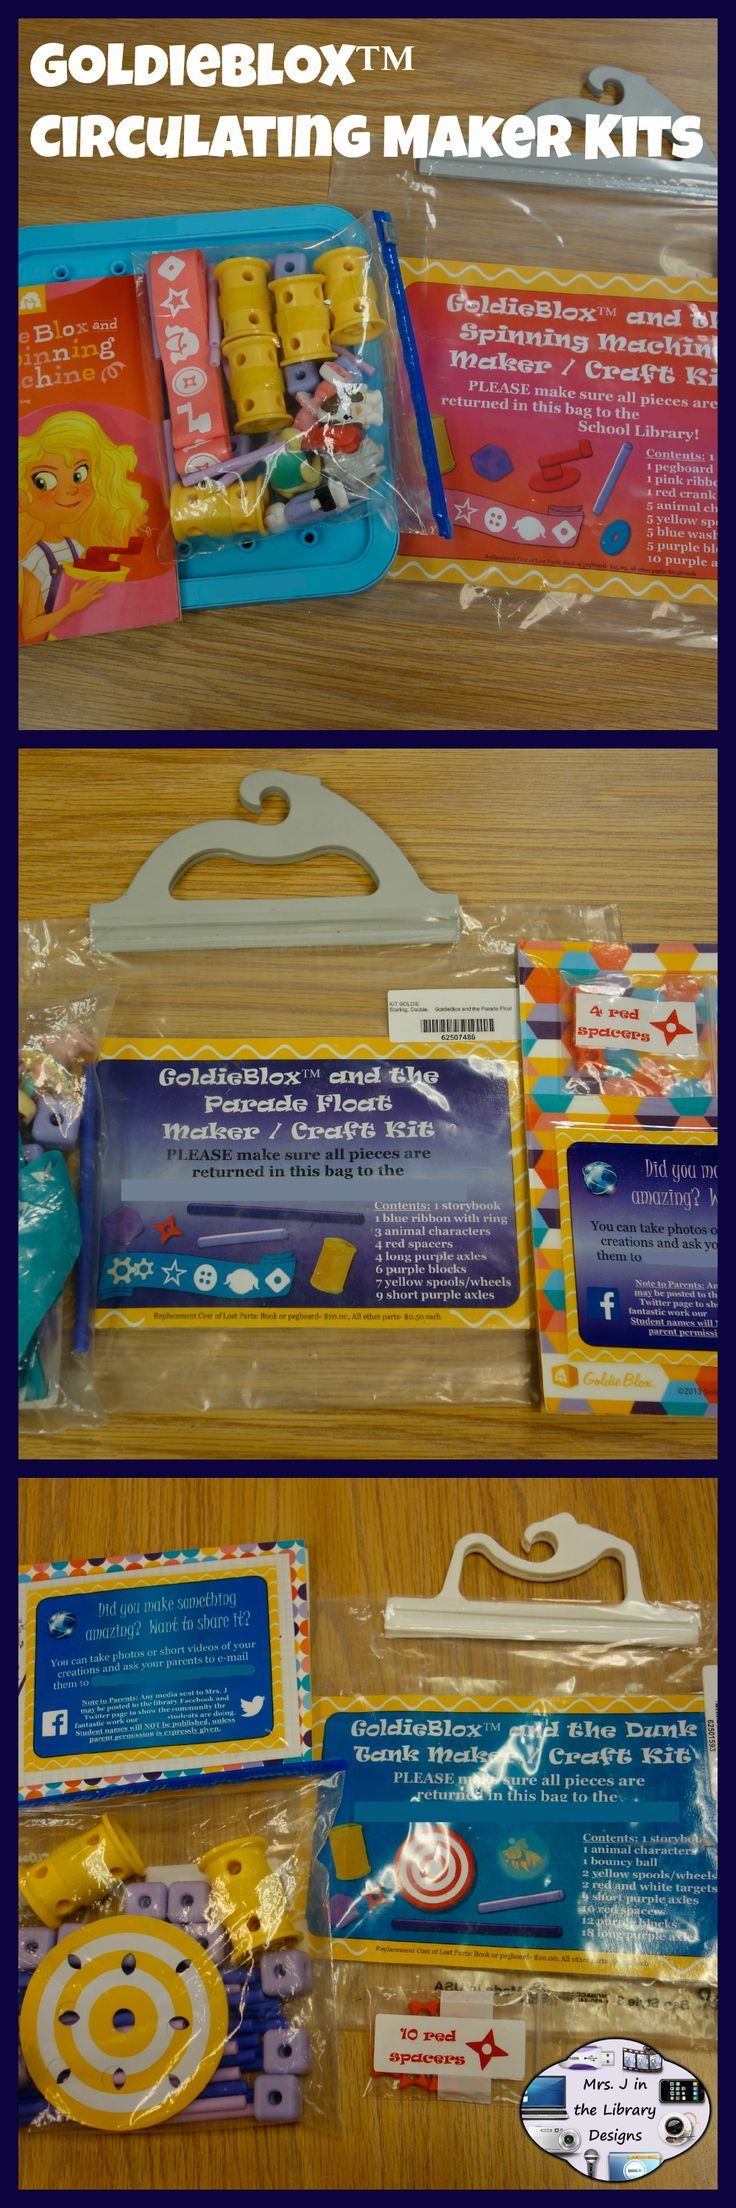 Makerspace Starter: GoldieBlox (TM) Circulating Kit Materials - Inspire creativity and problem-solving skills by converting retail GoldieBlox (TM) book plus construction sets into circulating craft / maker kits in your school library or classroom! $